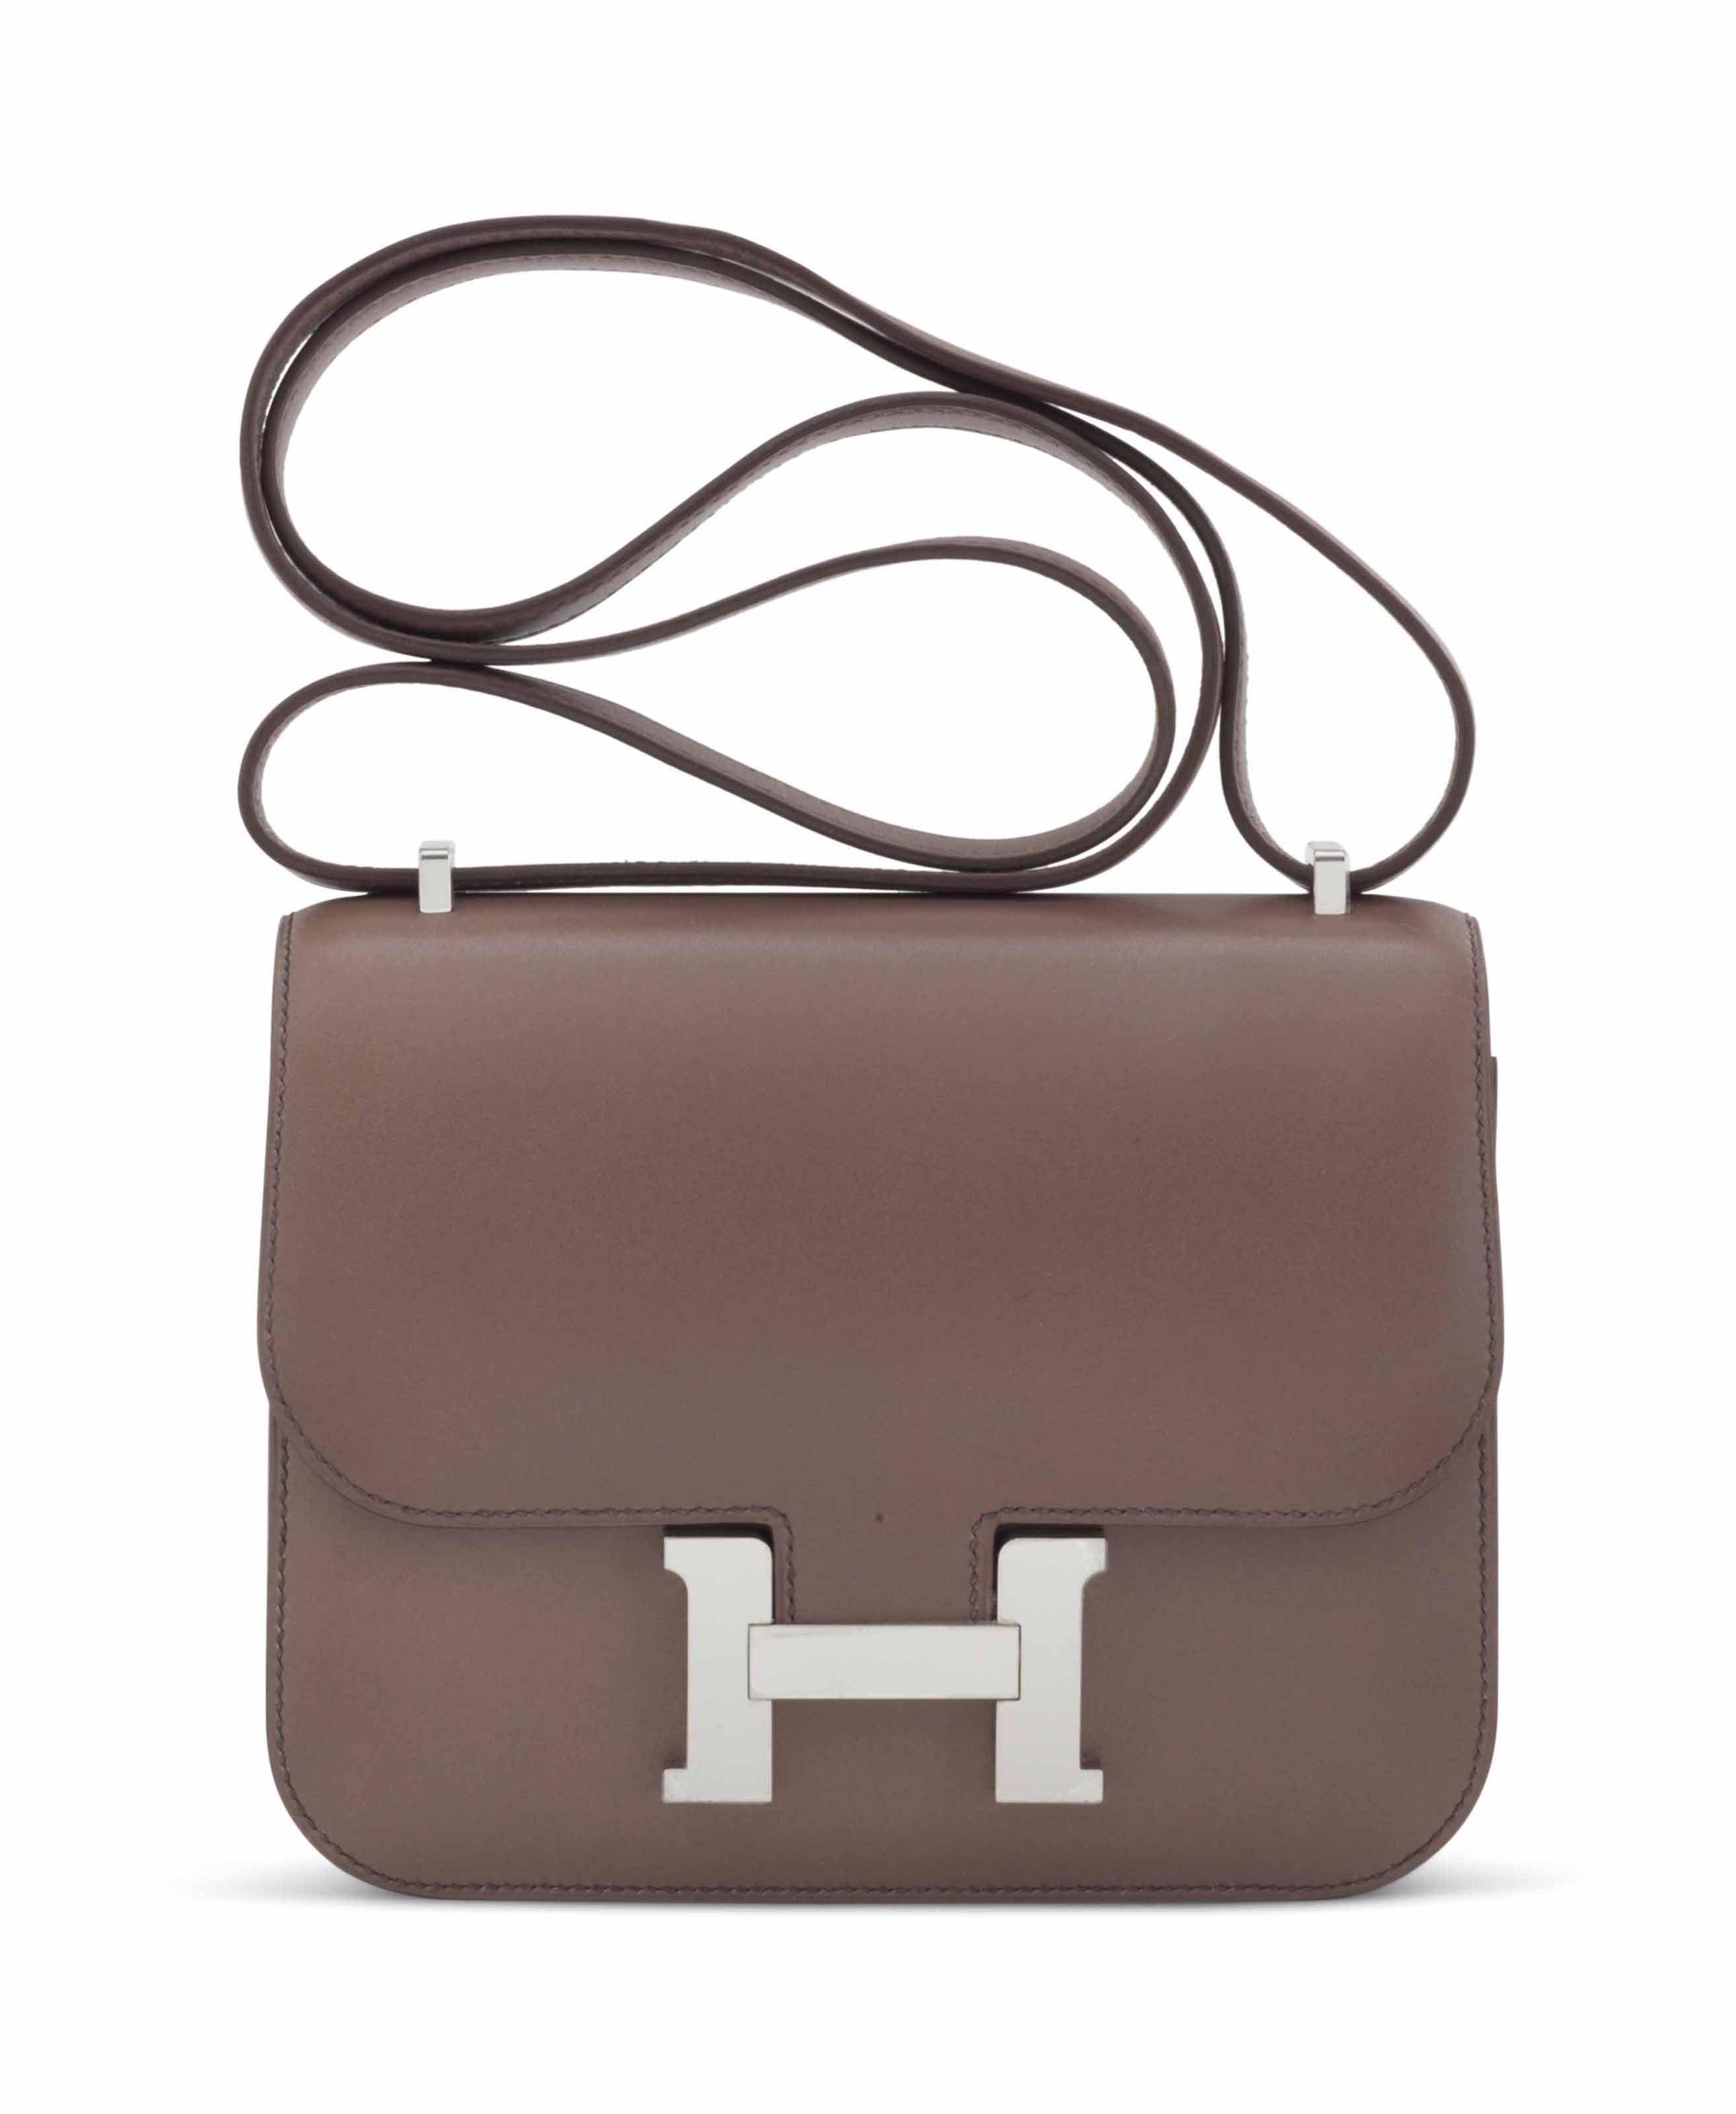 Hermes mini Griolet swift leather Constance